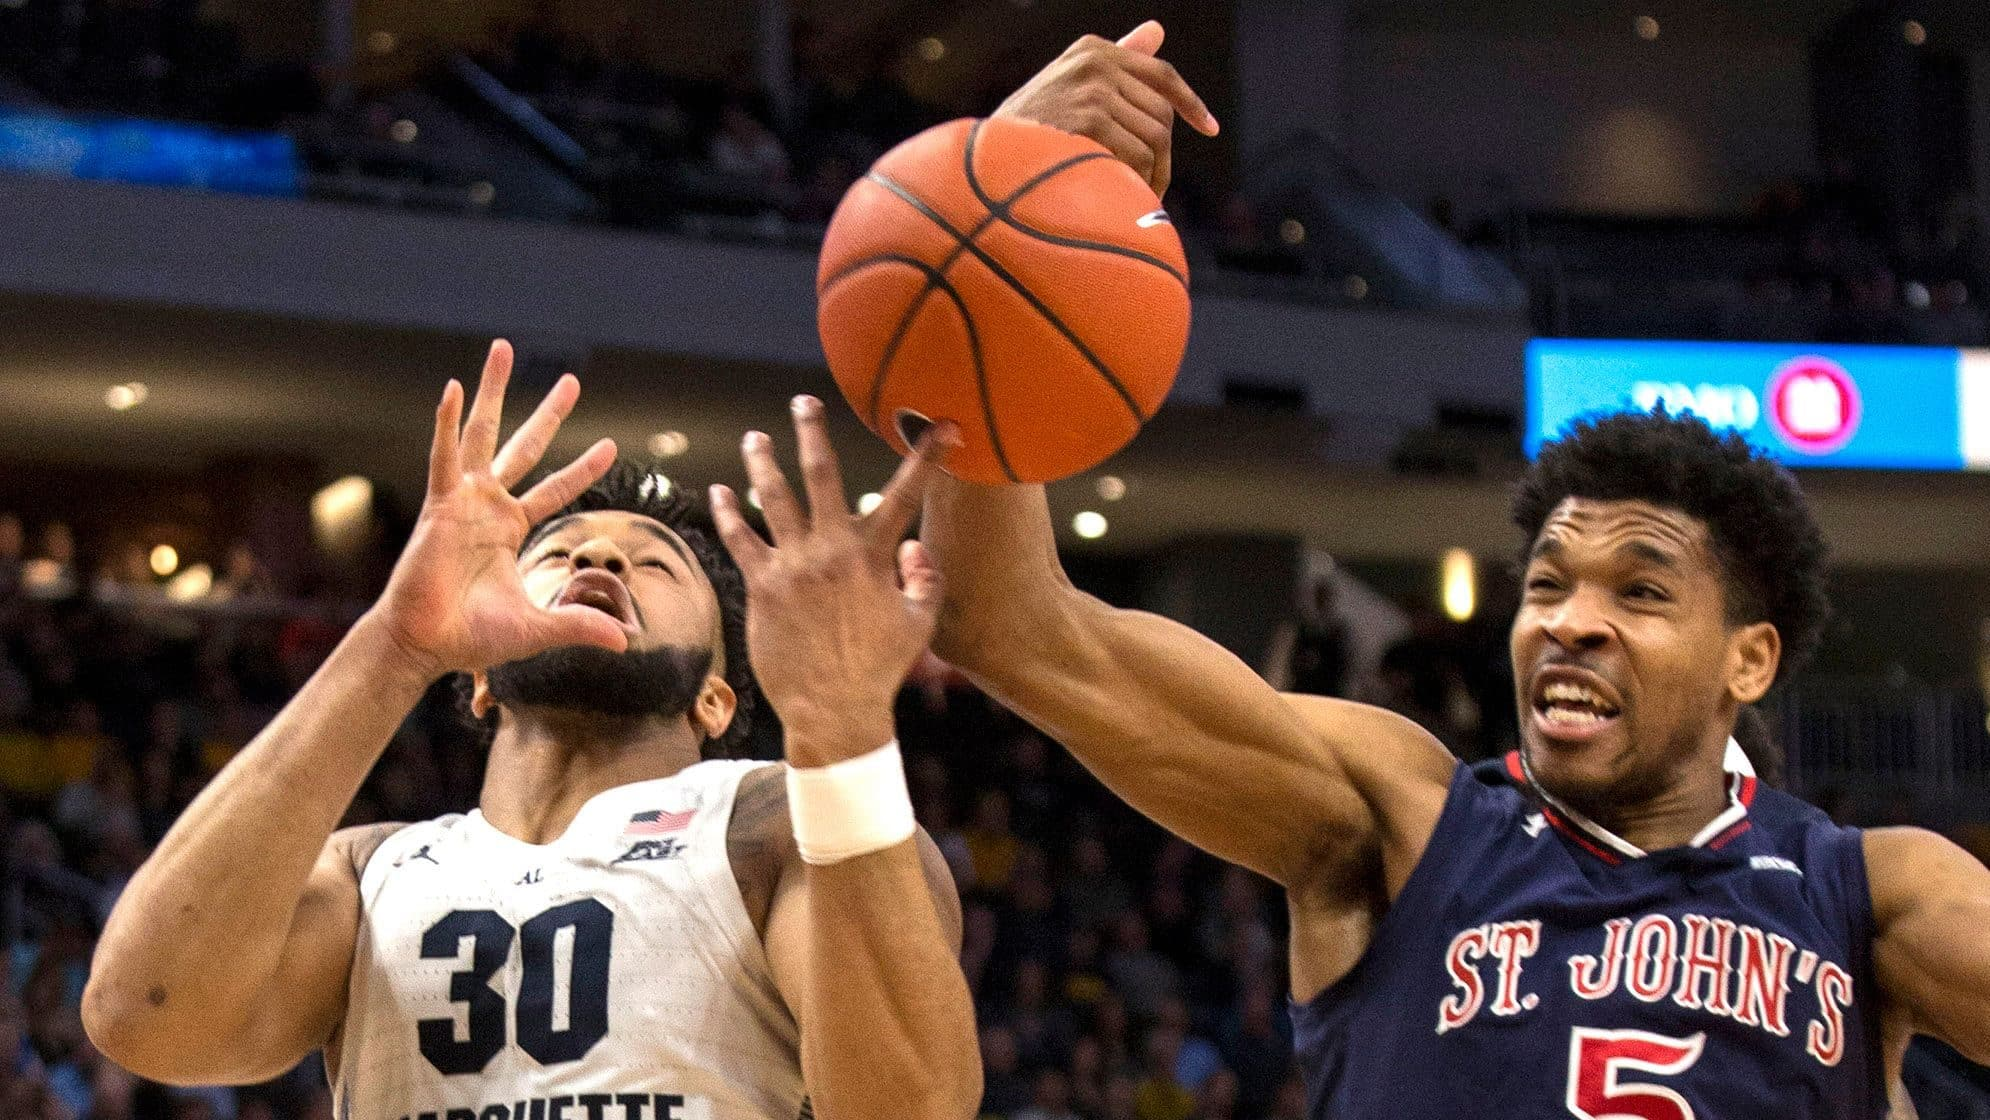 dc0f0e01937 St. John's Red Storm: Justin Simon one of many keys against Marquette